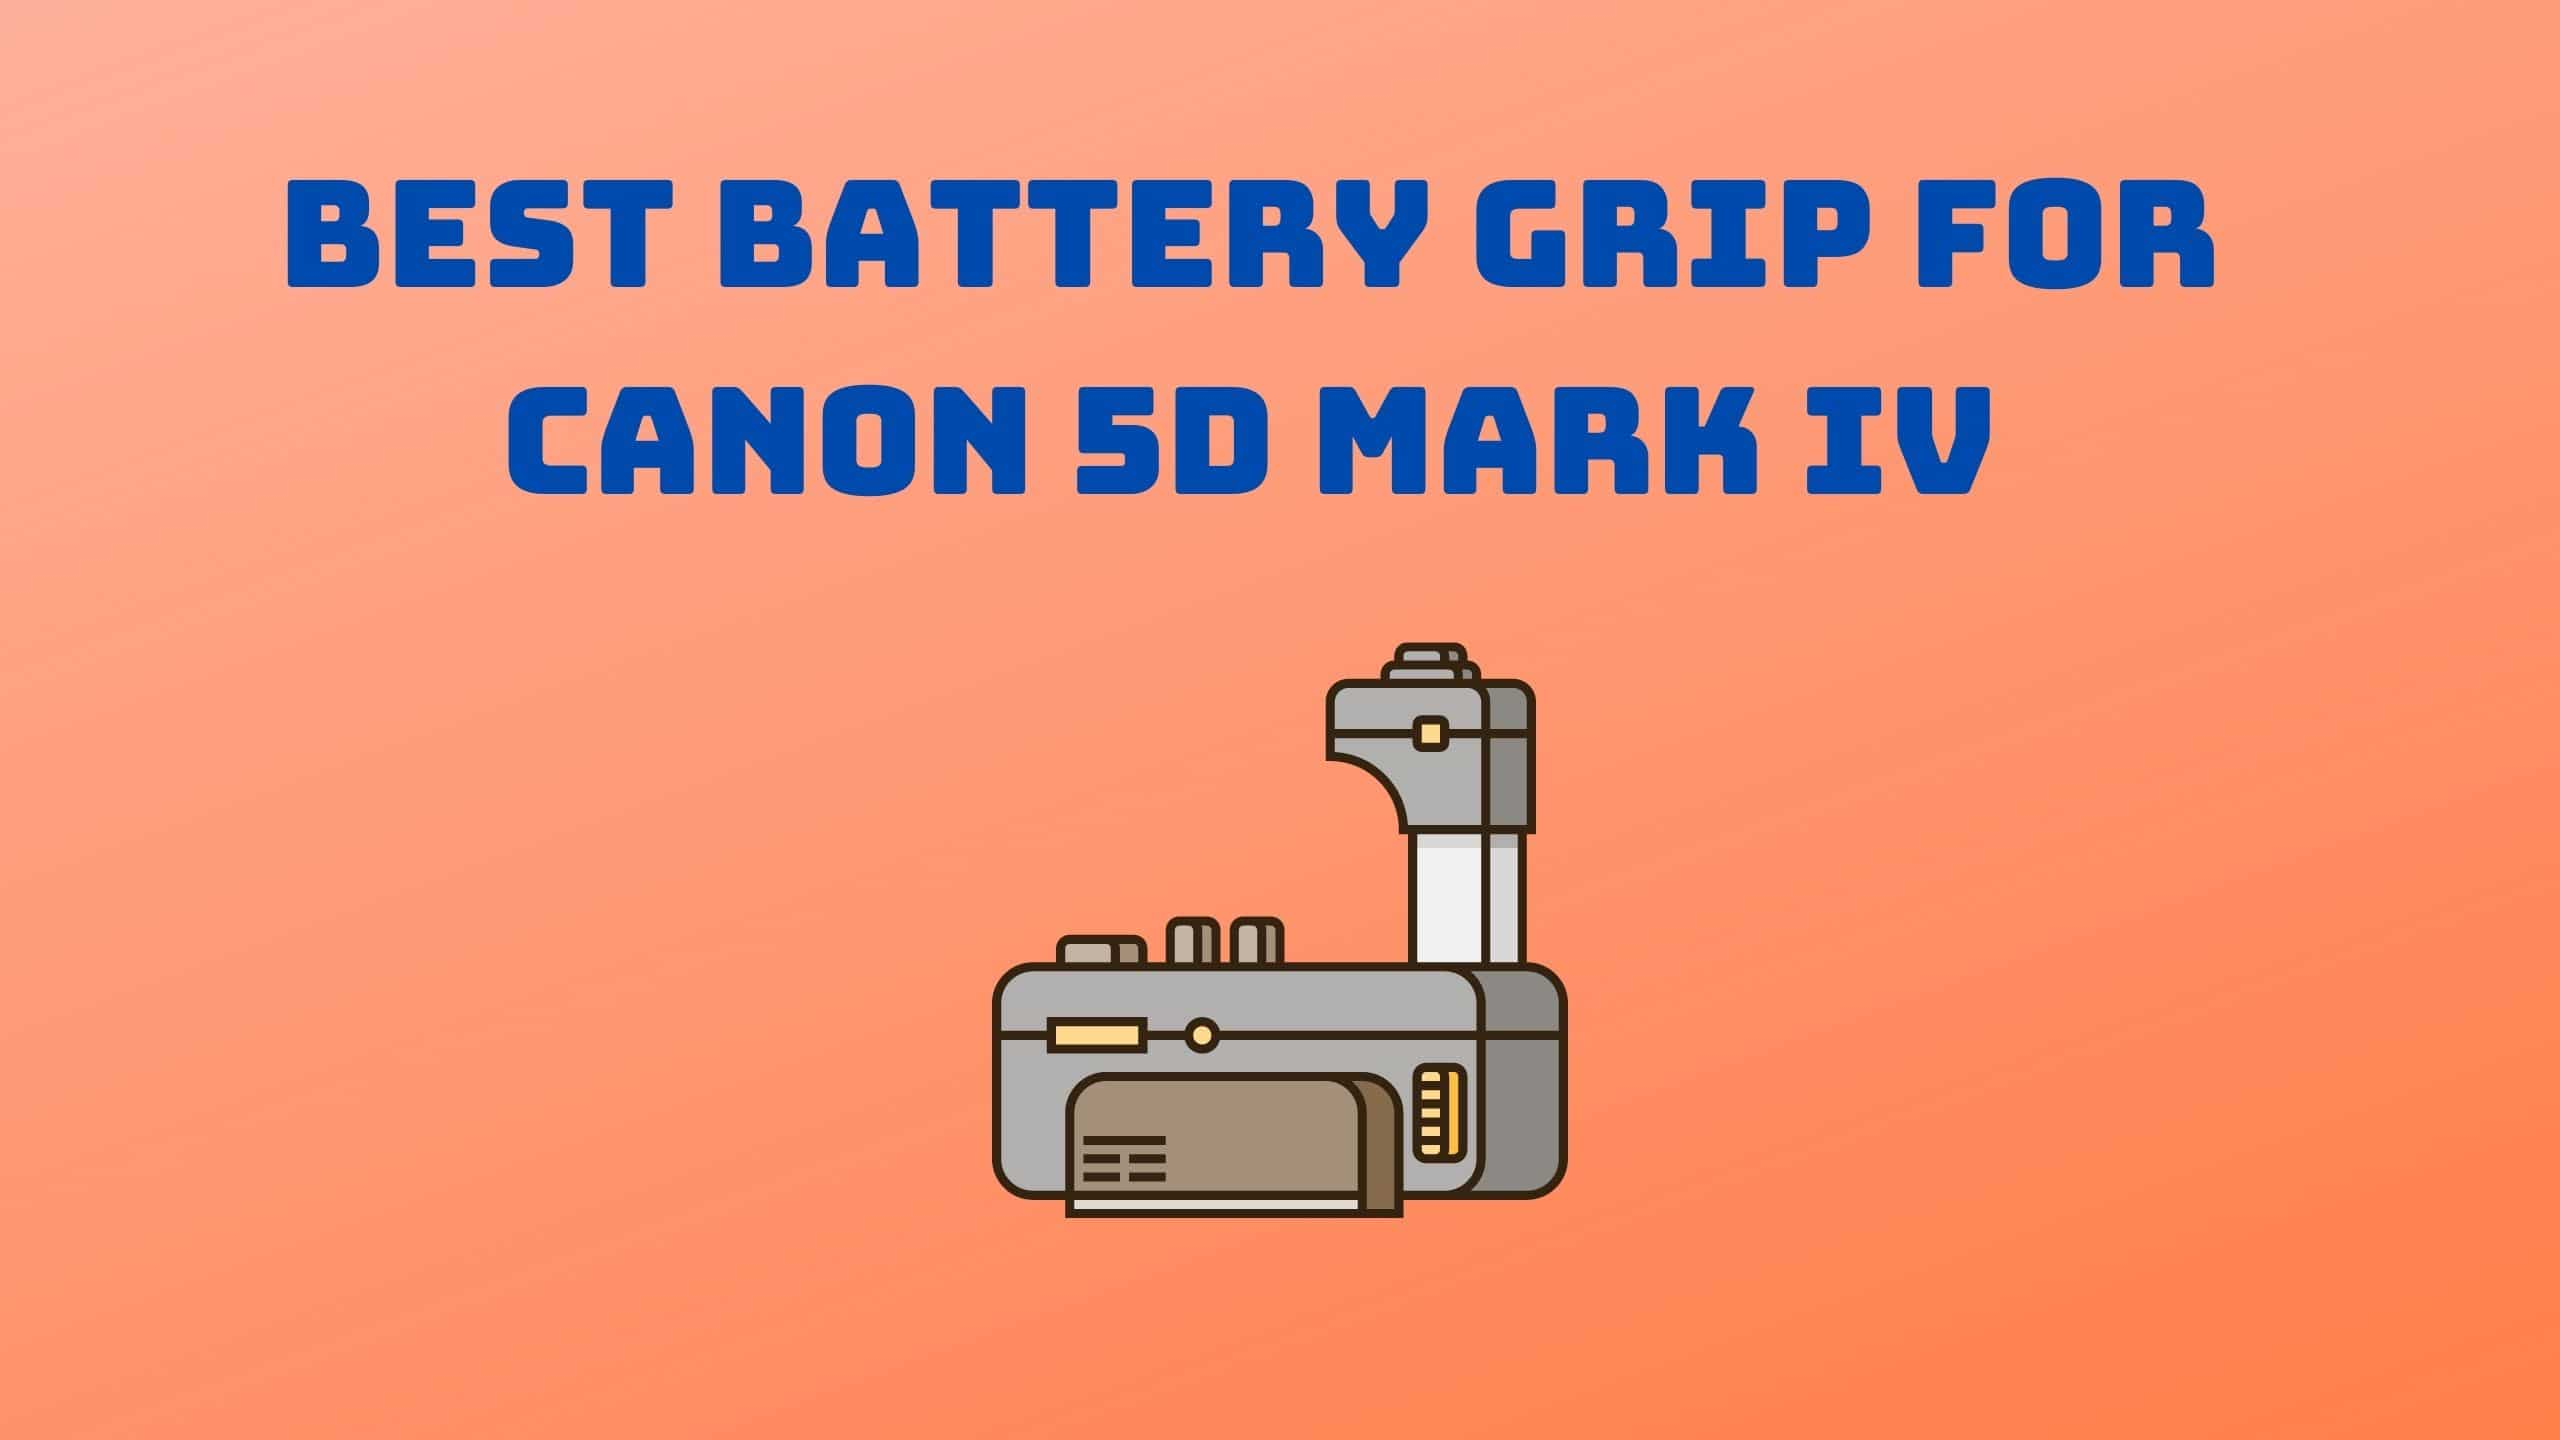 Best Battery Grip for Canon 5D Mark IV (1)